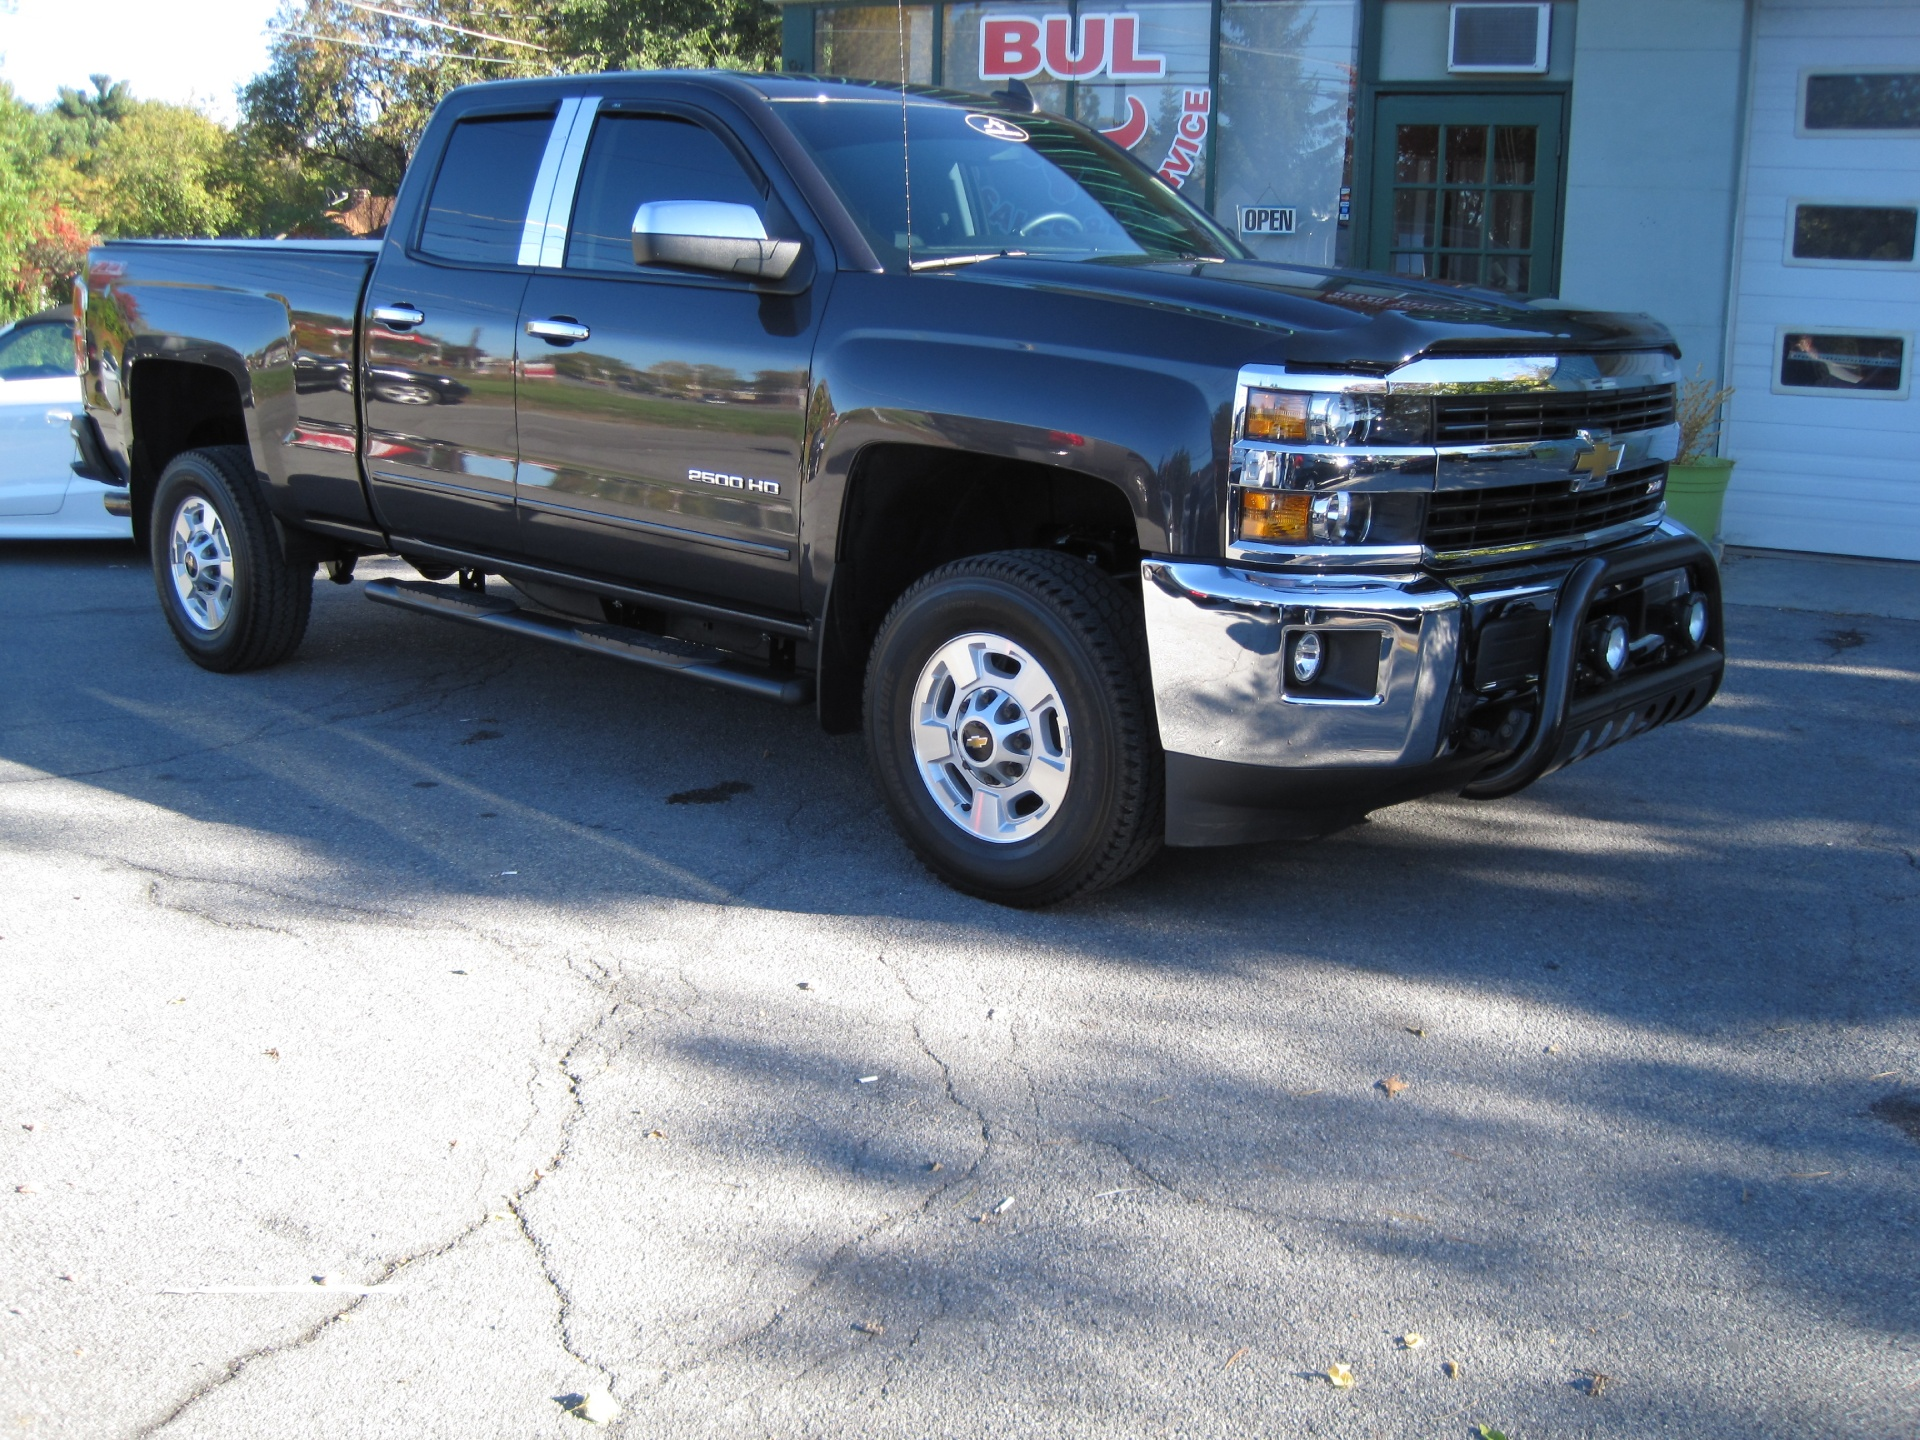 840_main_l 2015 chevrolet silverado 2500hd lt 2500hd 4x4 extended cab,like  at honlapkeszites.co